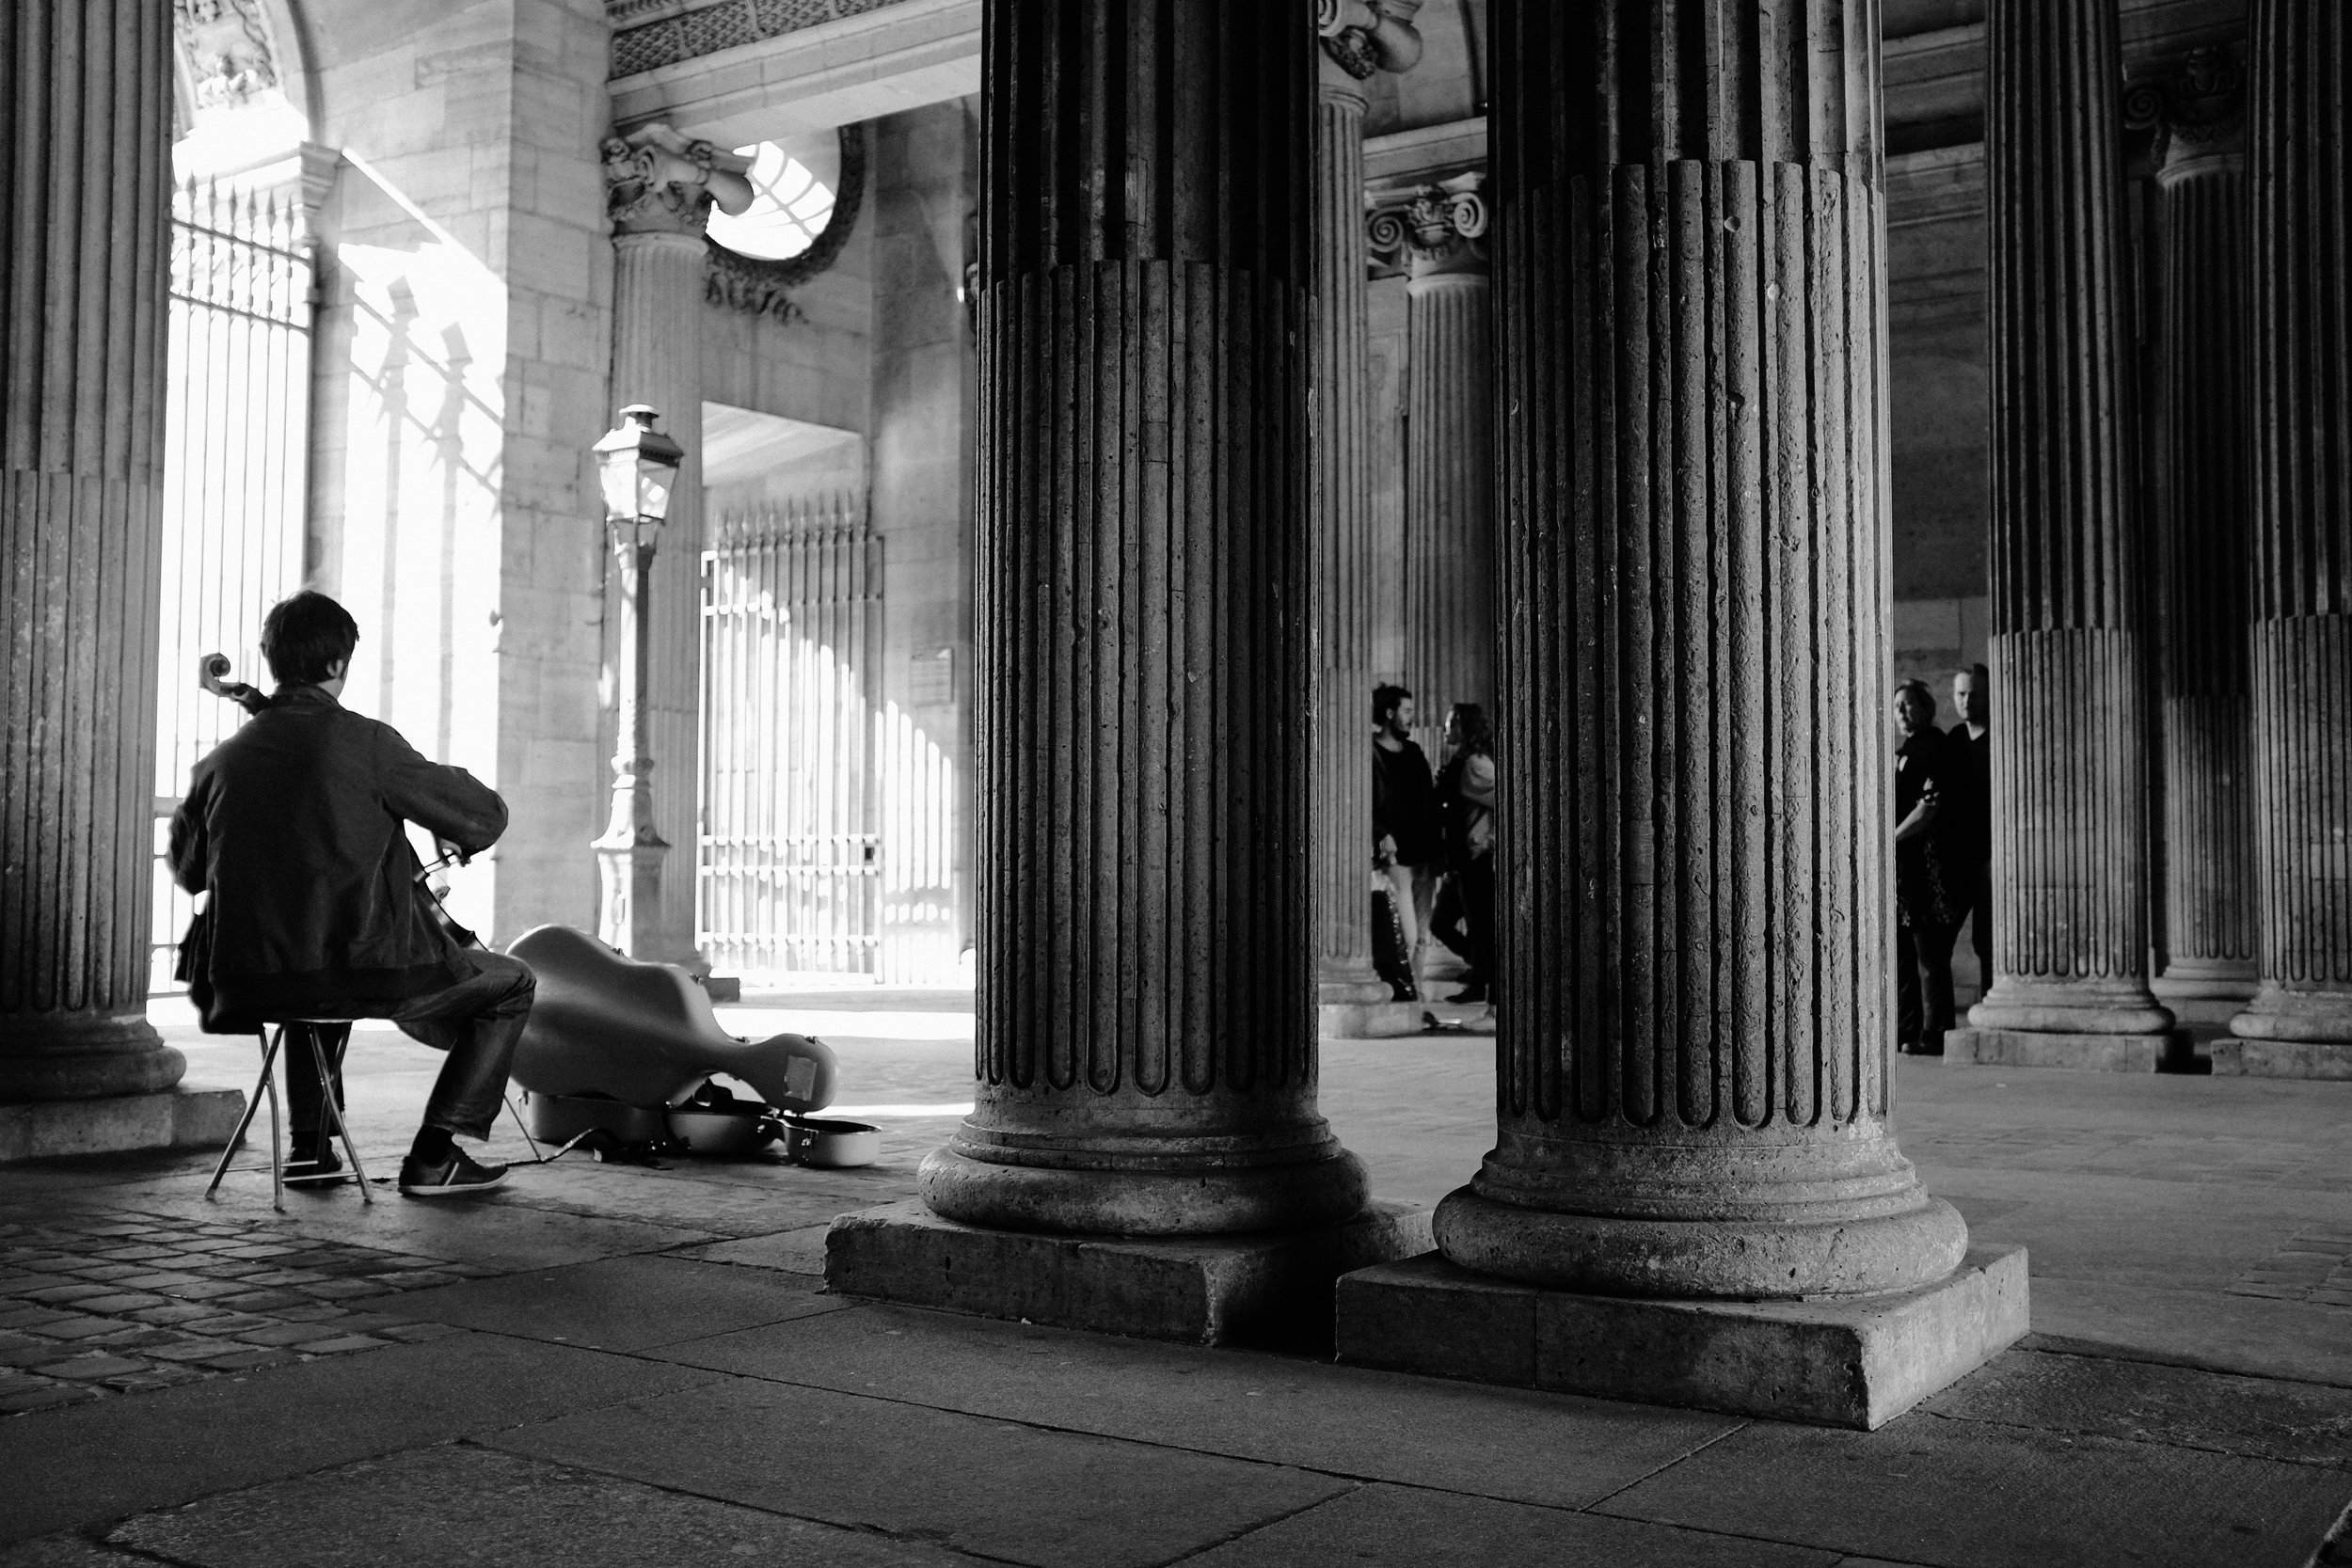 Shadows in the City of Light.  PARIS, FRANCE  —  Couples listen to a lone musician playing behind the pillars of the Louvre.